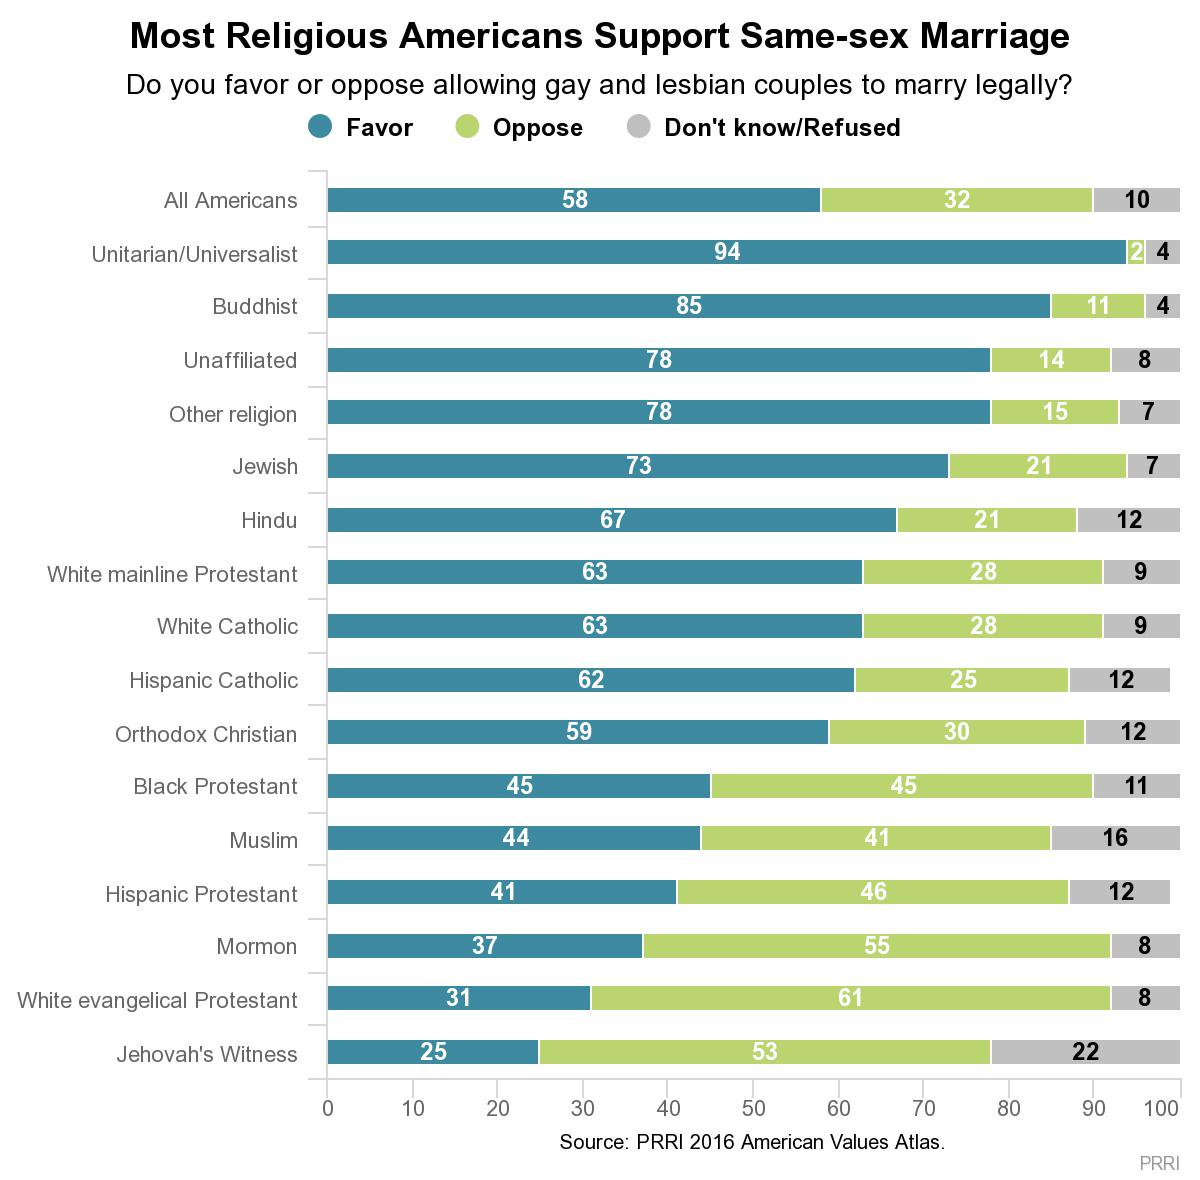 Jewish religion and homosexual marriage